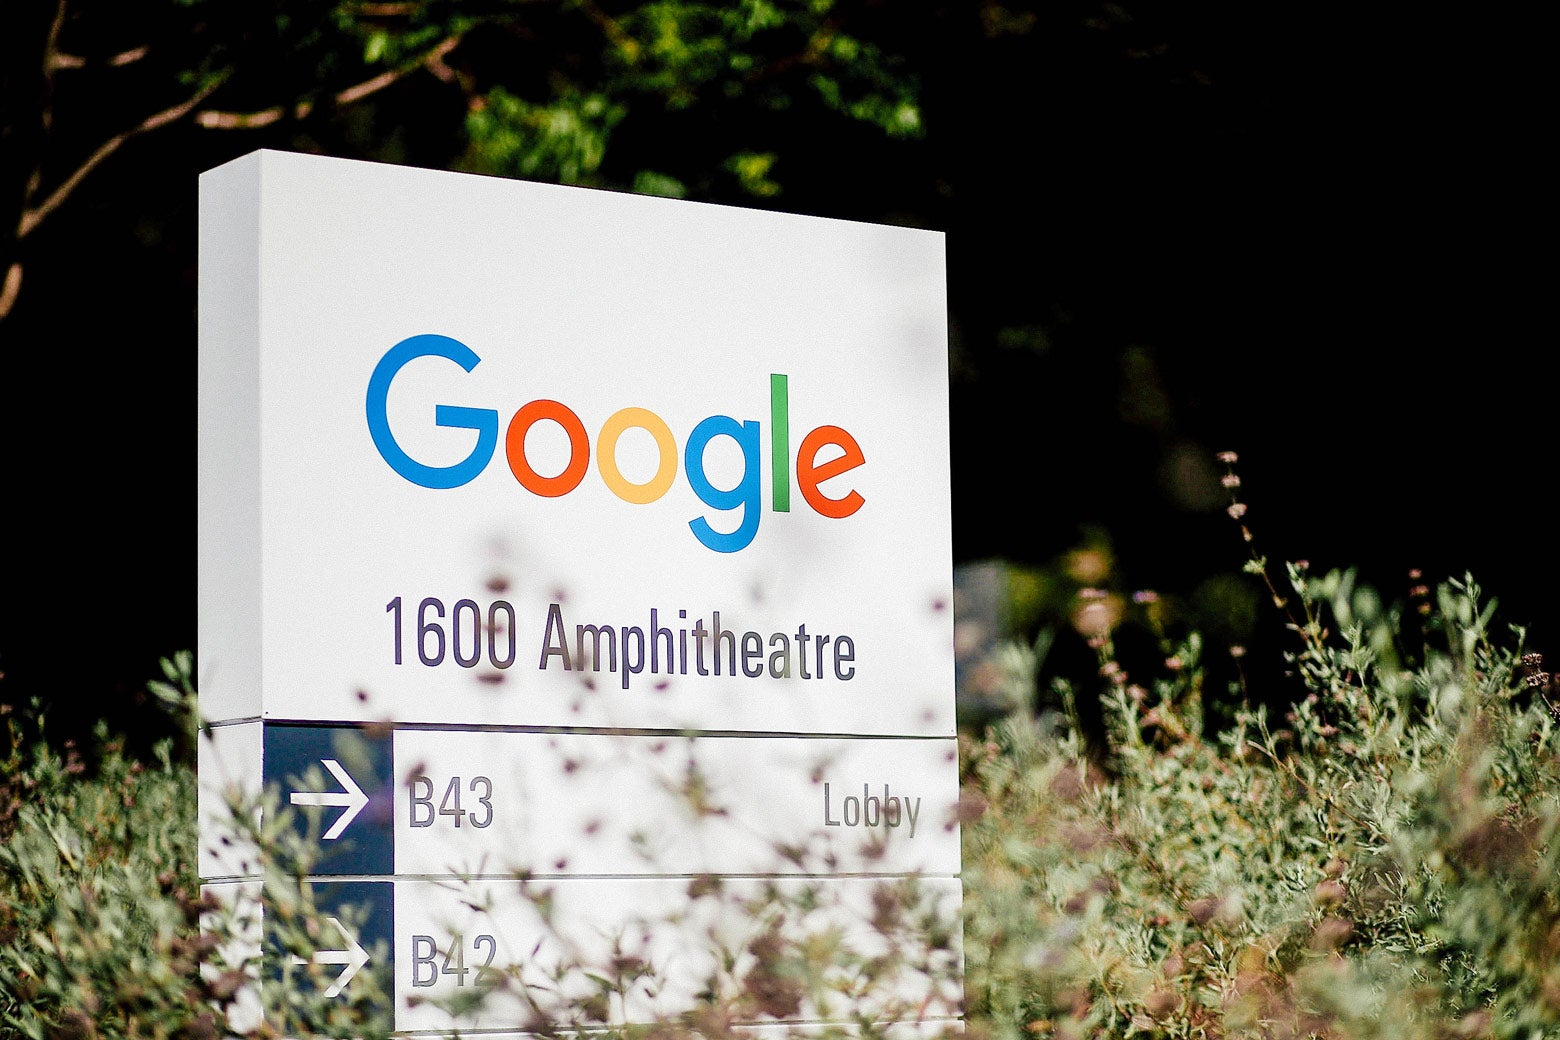 Google logo is displayed on a sign.